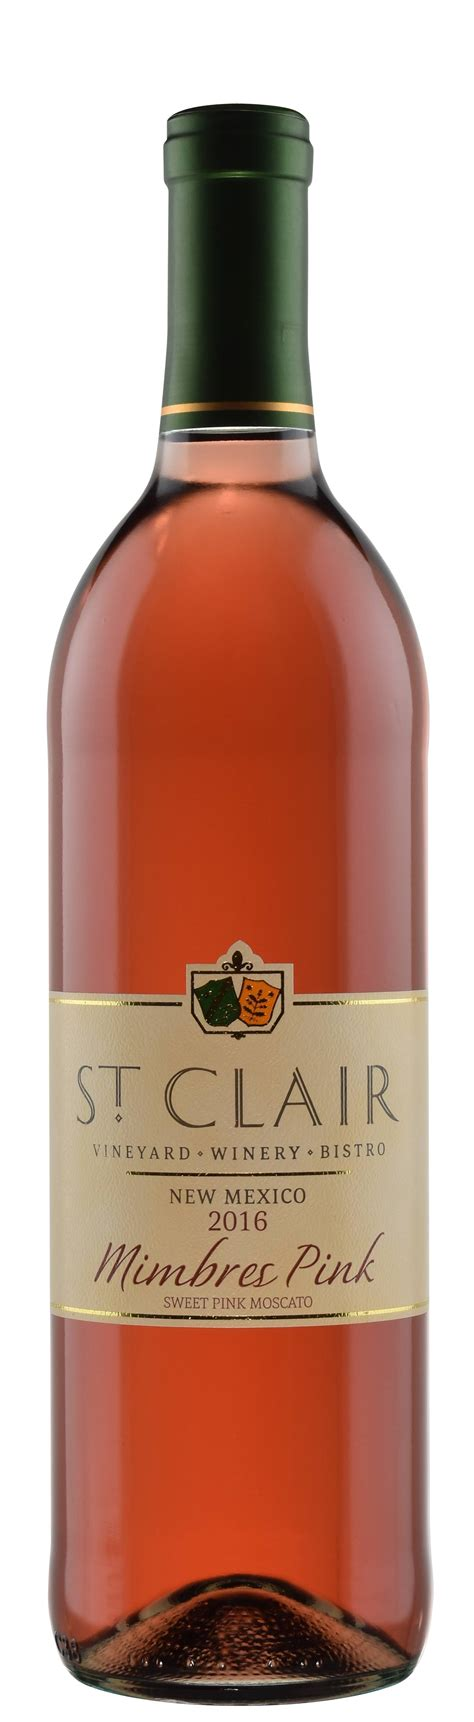 St. Clair Mimbres Pink • St. Clair Winery